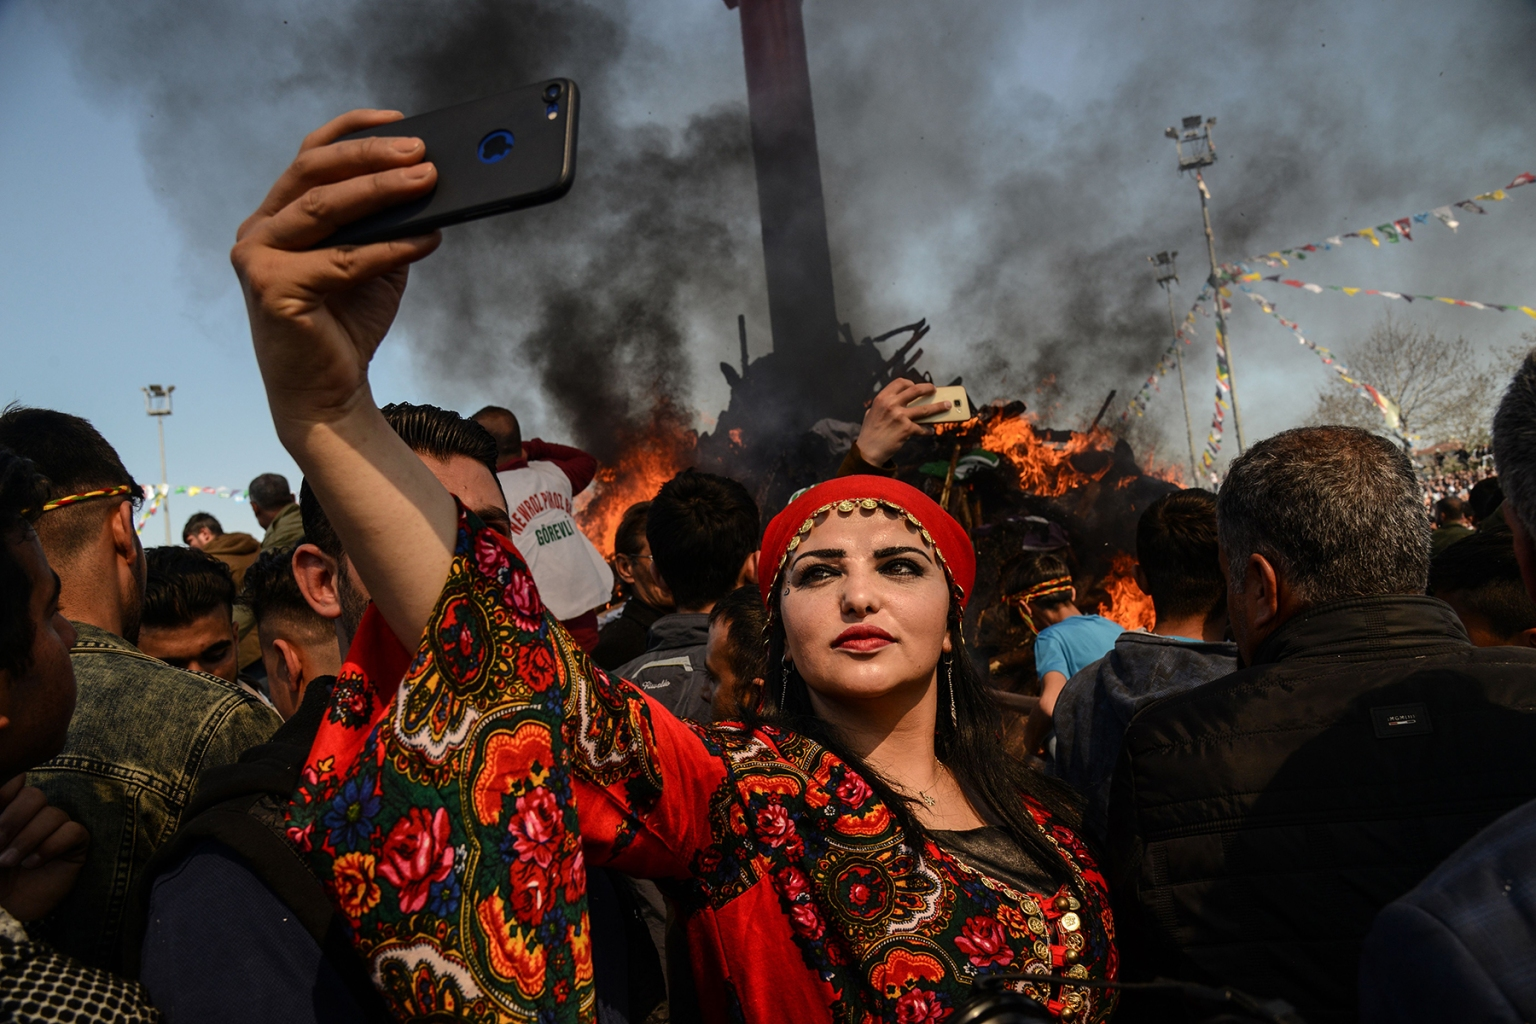 A woman takes a selfie in front of a bonfire as Turkish Kurds gather during Newroz celebrations for the new year in Diyarbakir, southeastern Turkey, on March 21. The ancient Persian festival marks the first day of spring. YAS AKENGIN/AFP/Getty Images